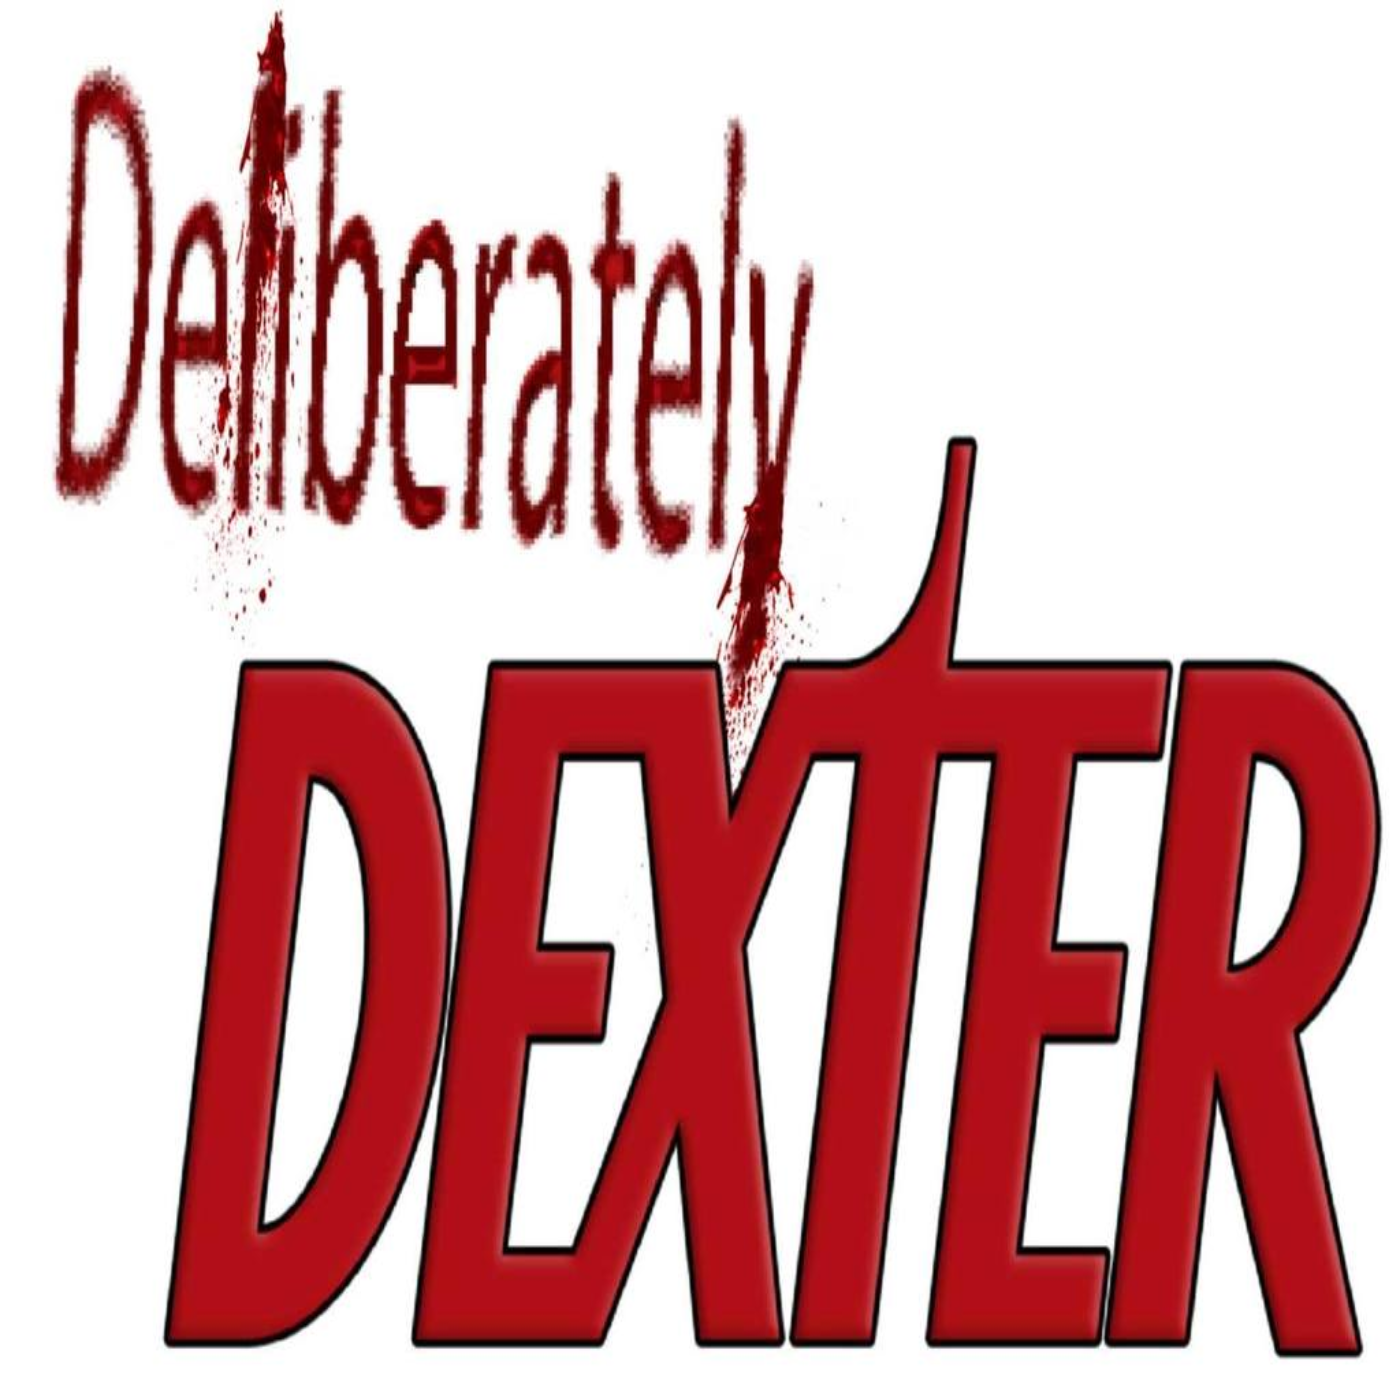 Deliberately Dexter